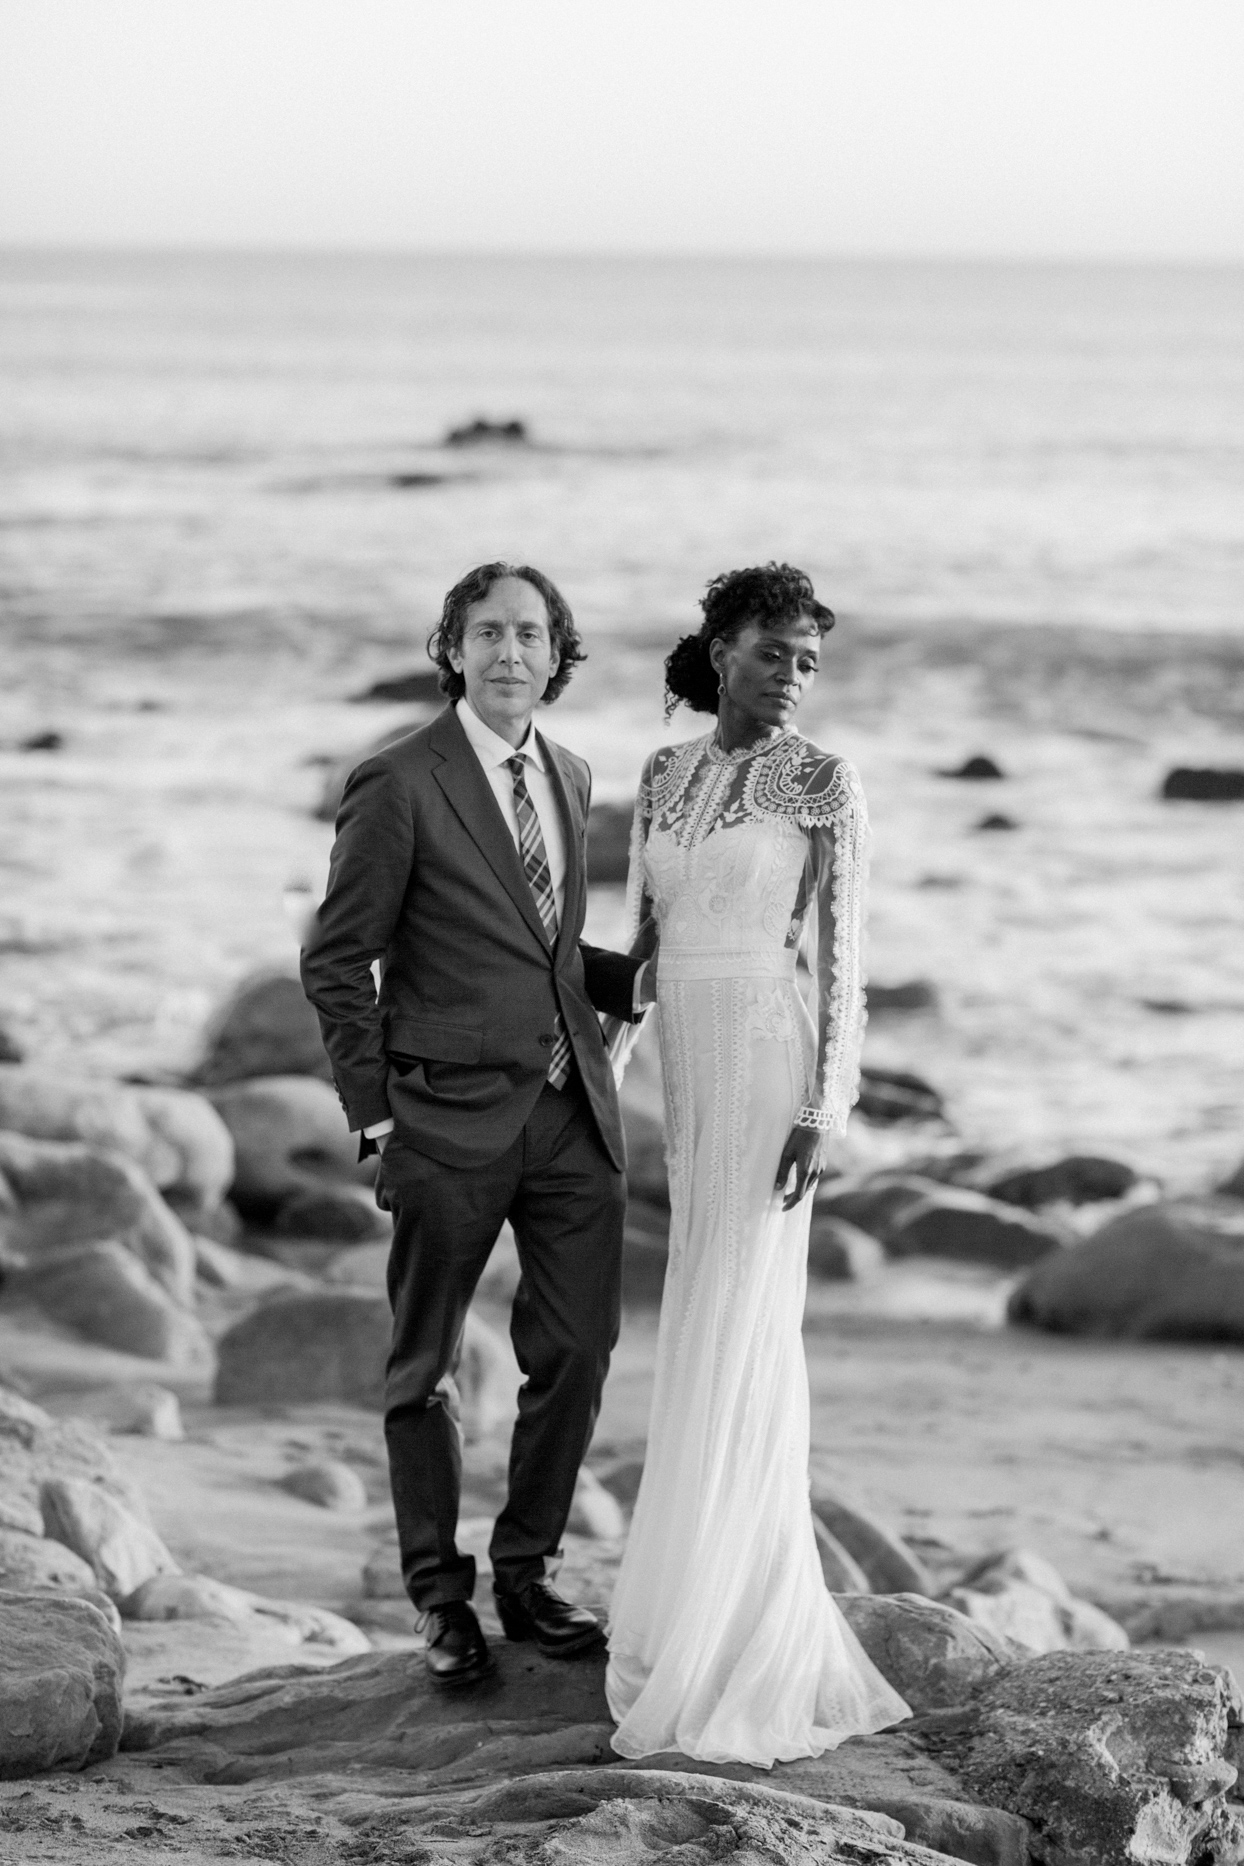 bride and groom standing on rocky beach area by ocean